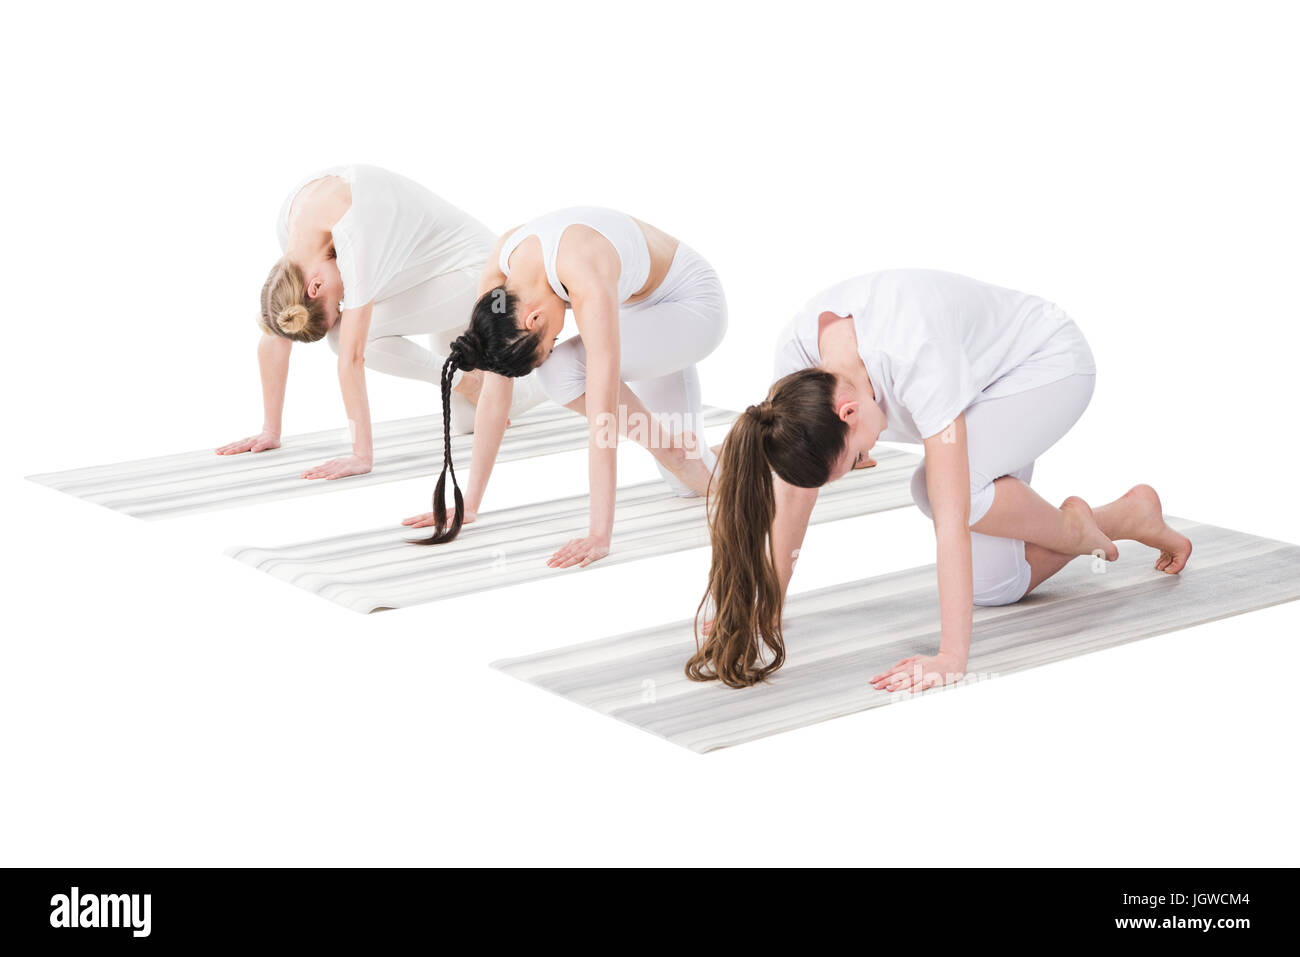 women performing Knee to Forehead asana or Eka Pada Marjariasana on yoga mats isolated on white - Stock Image